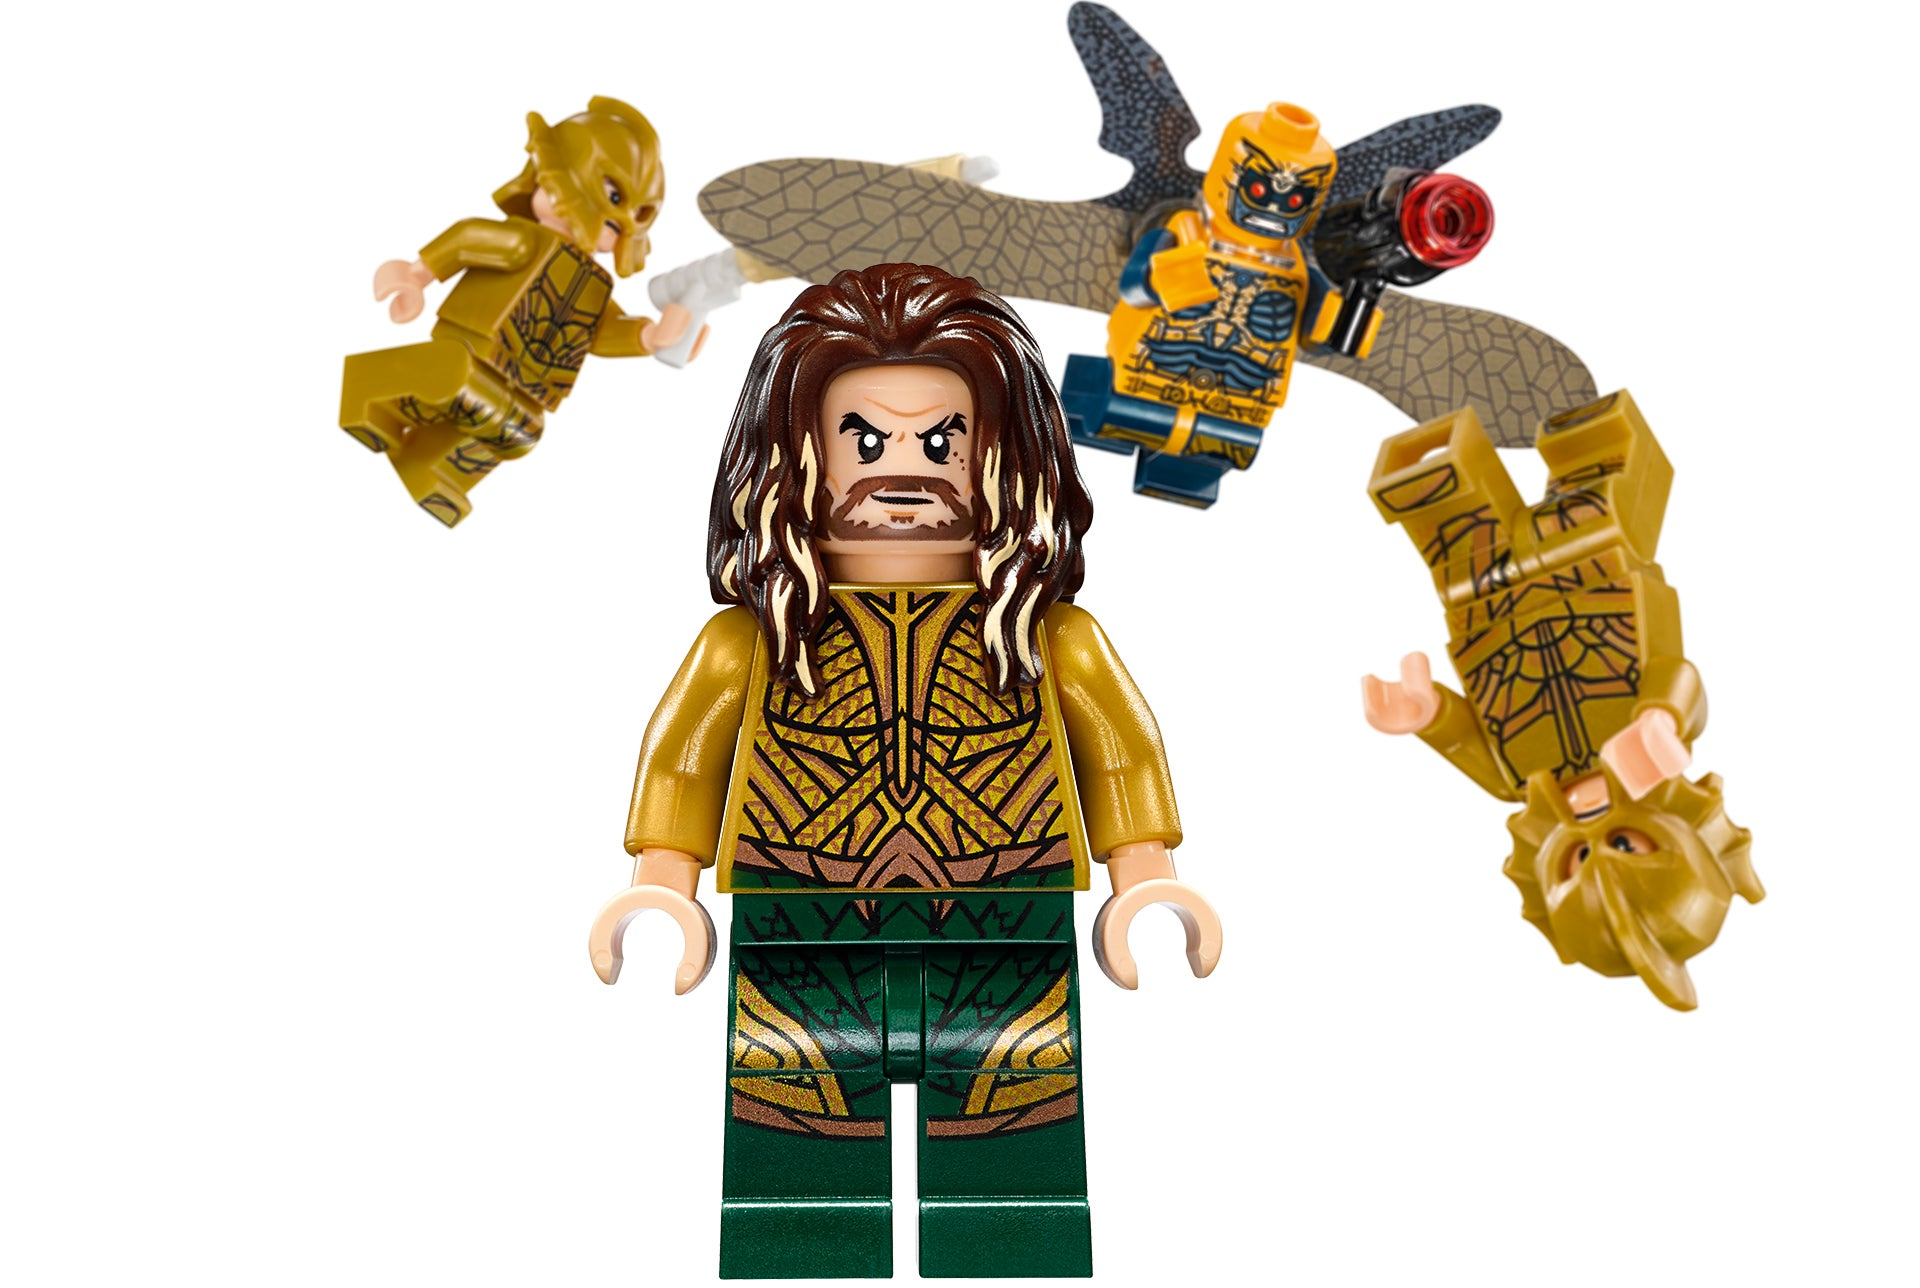 The Lego League Sets Justice Are Movie Friendly Super lJ13TFcK